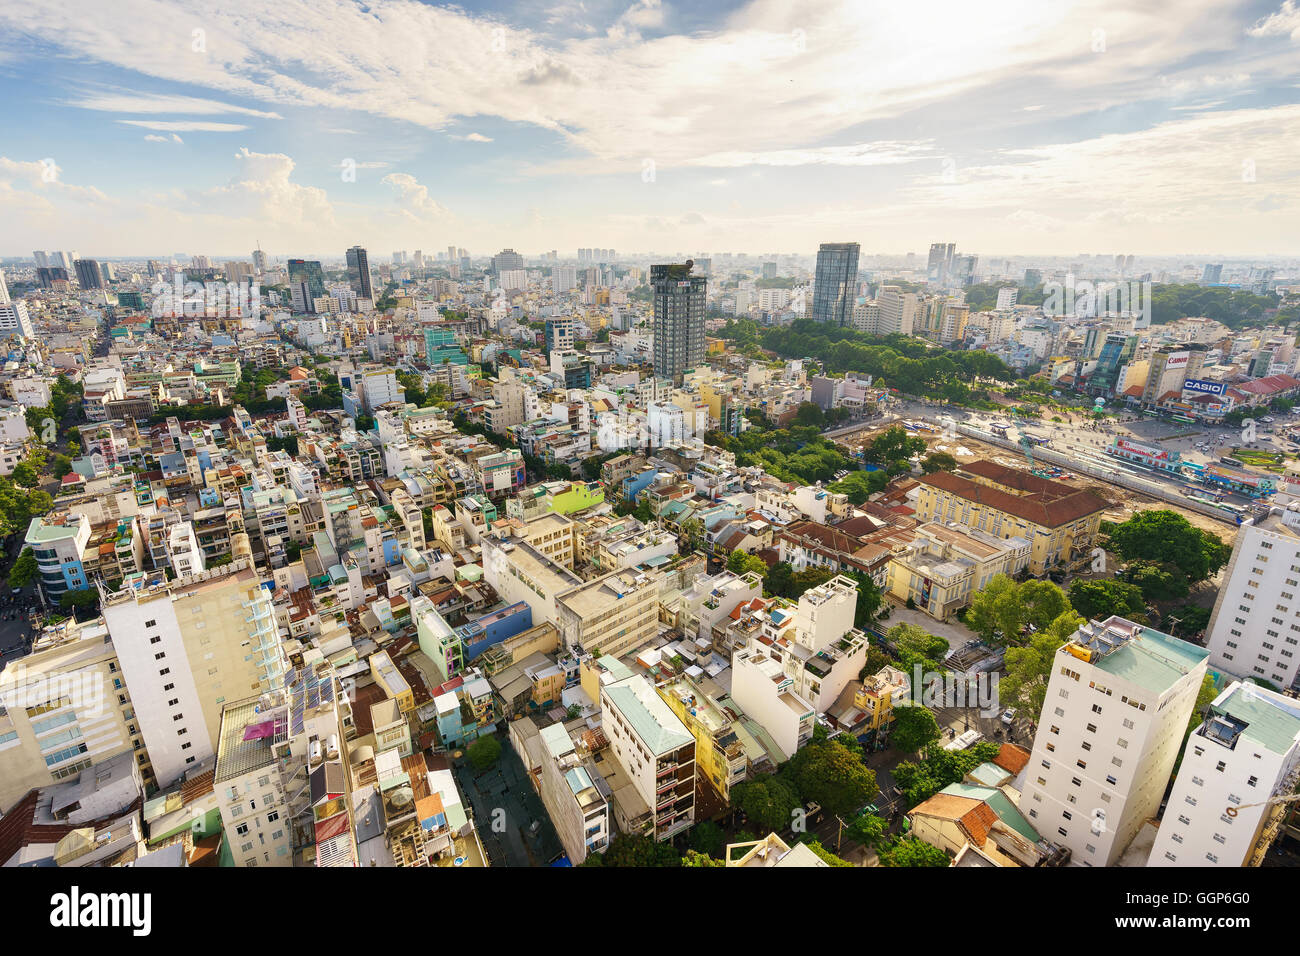 Ho Chi Minh city (or Saigon) skyline with colorful house in sunset, Vietnam. Stock Photo